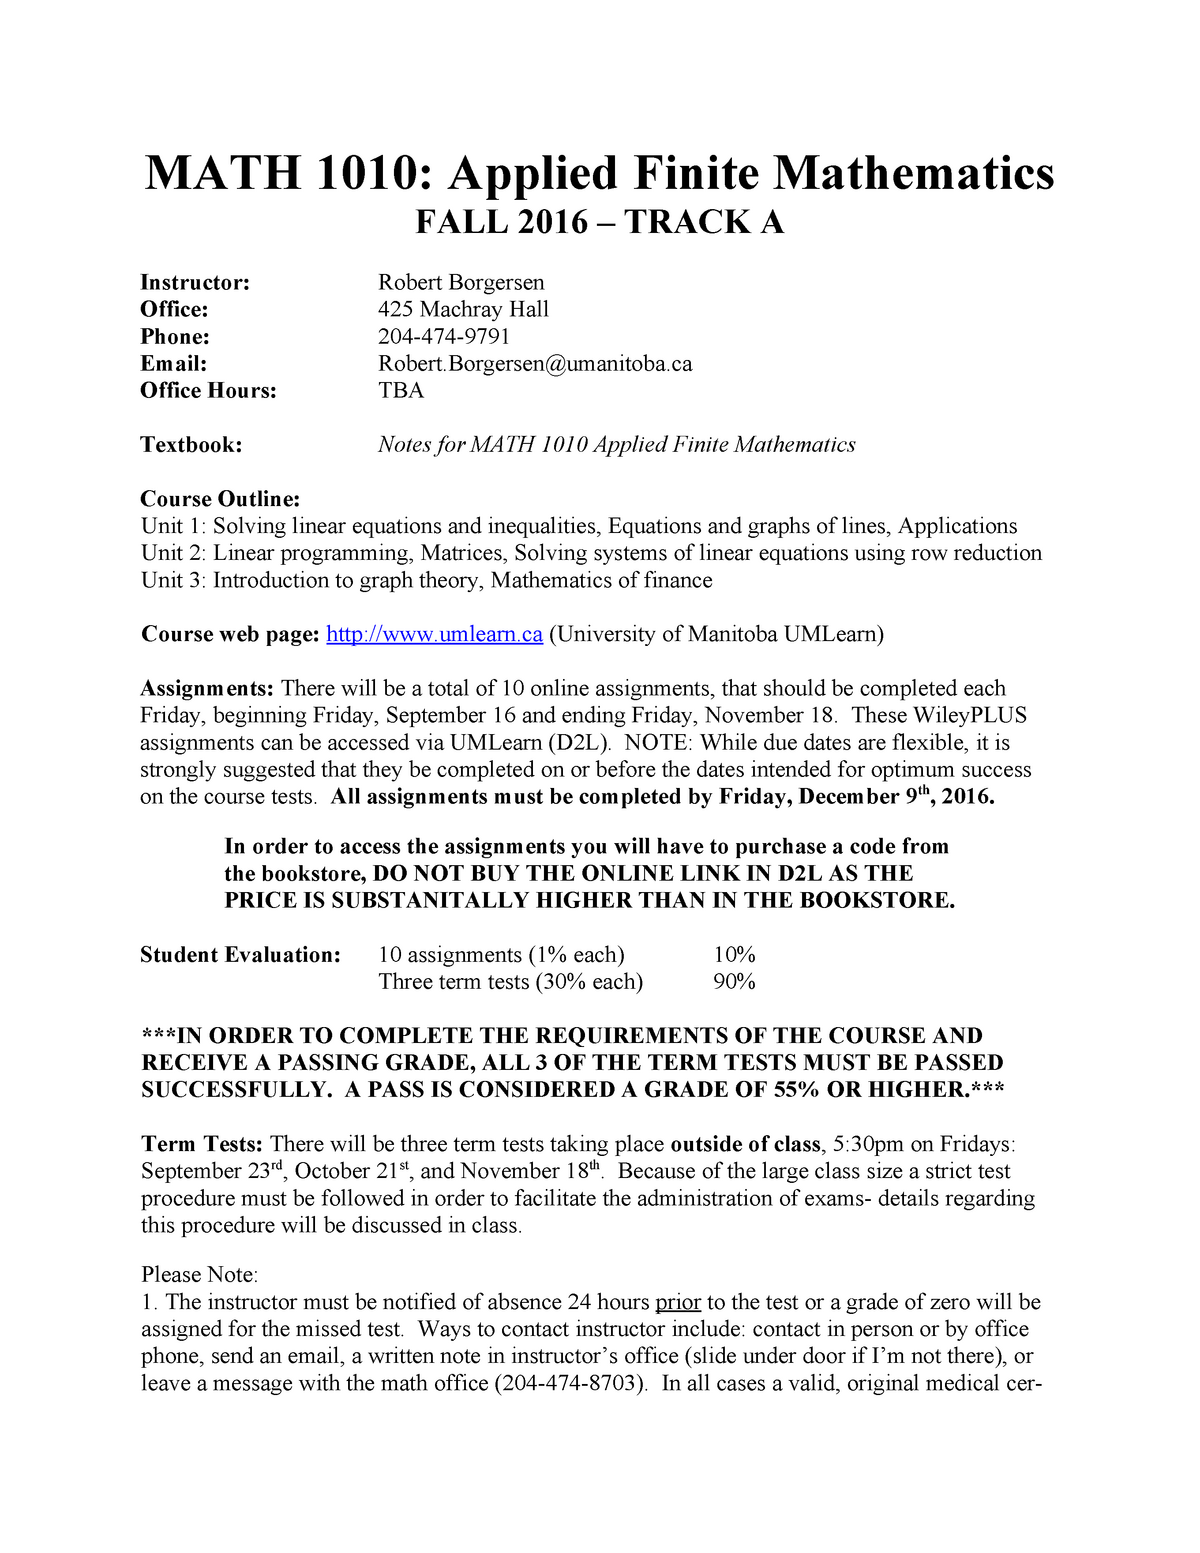 Track A outline- Final - Lecture note Course Outline - MATH